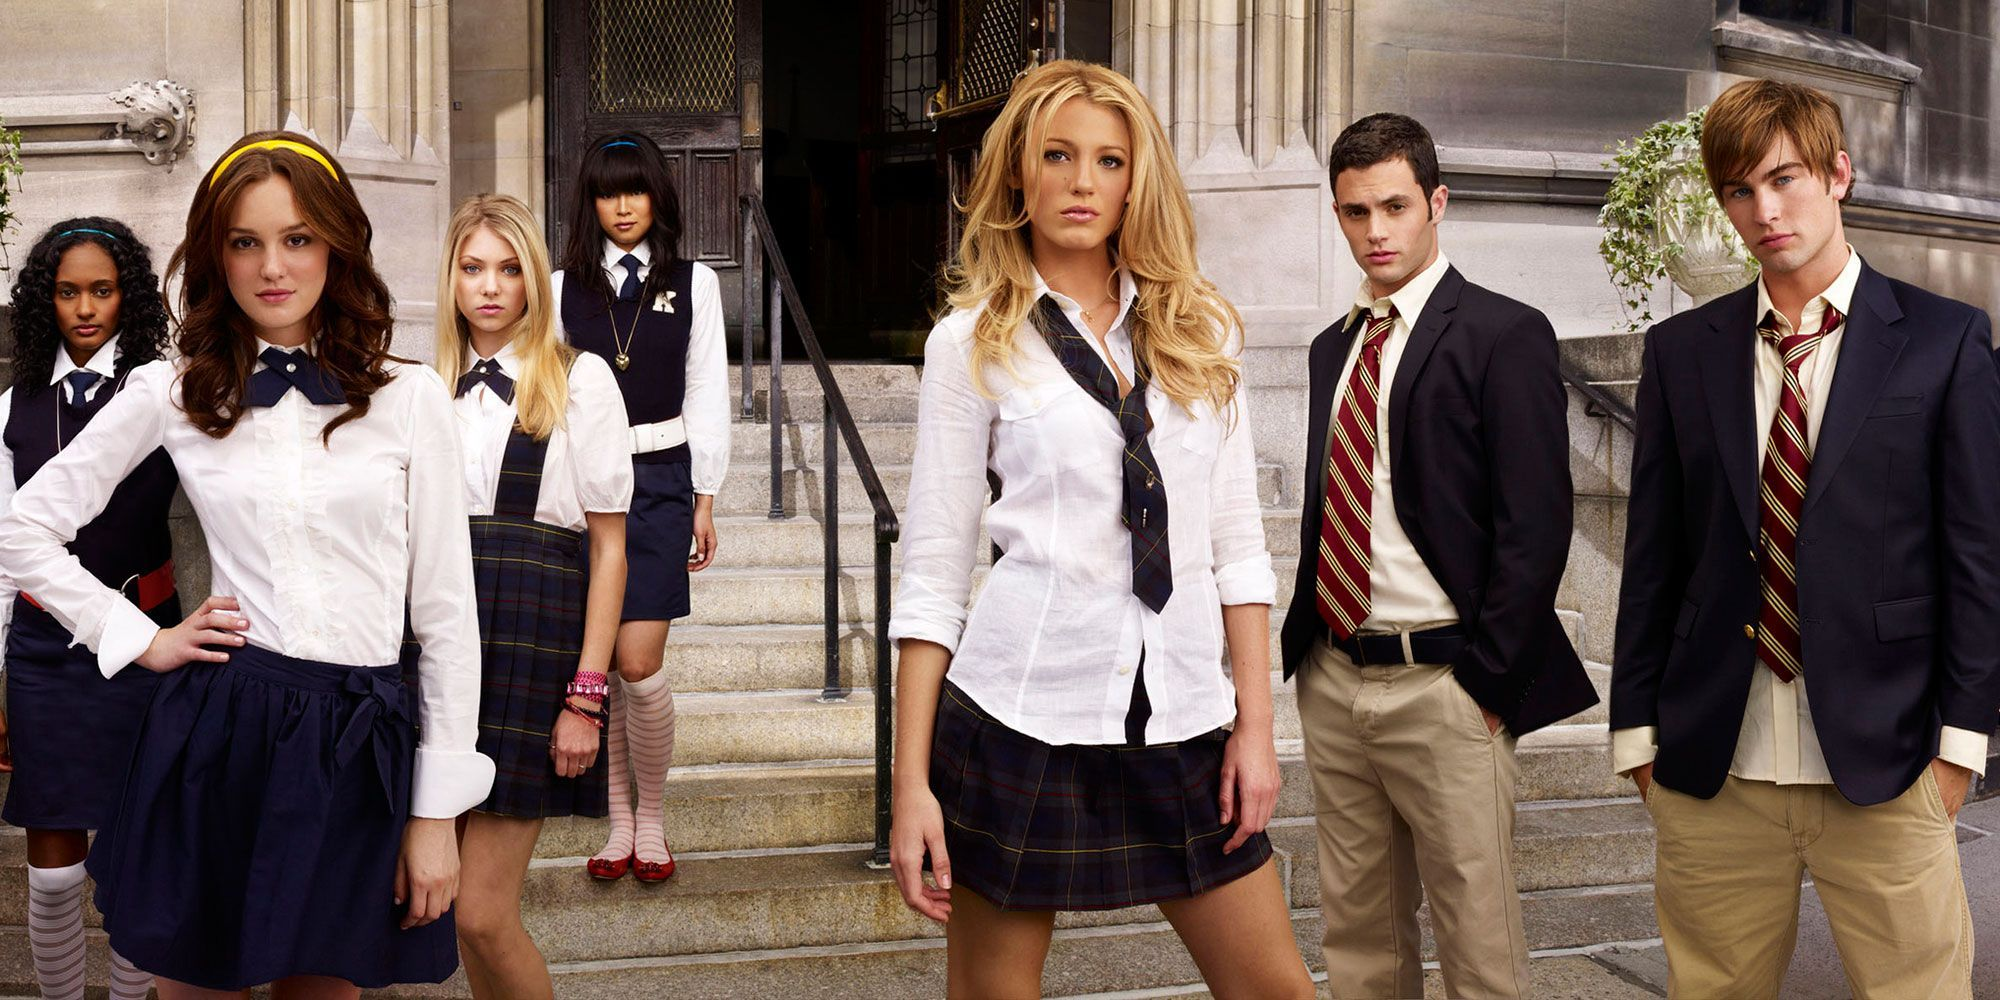 22 Best Teen TV Dramas - Top TV Shows for Teenagers